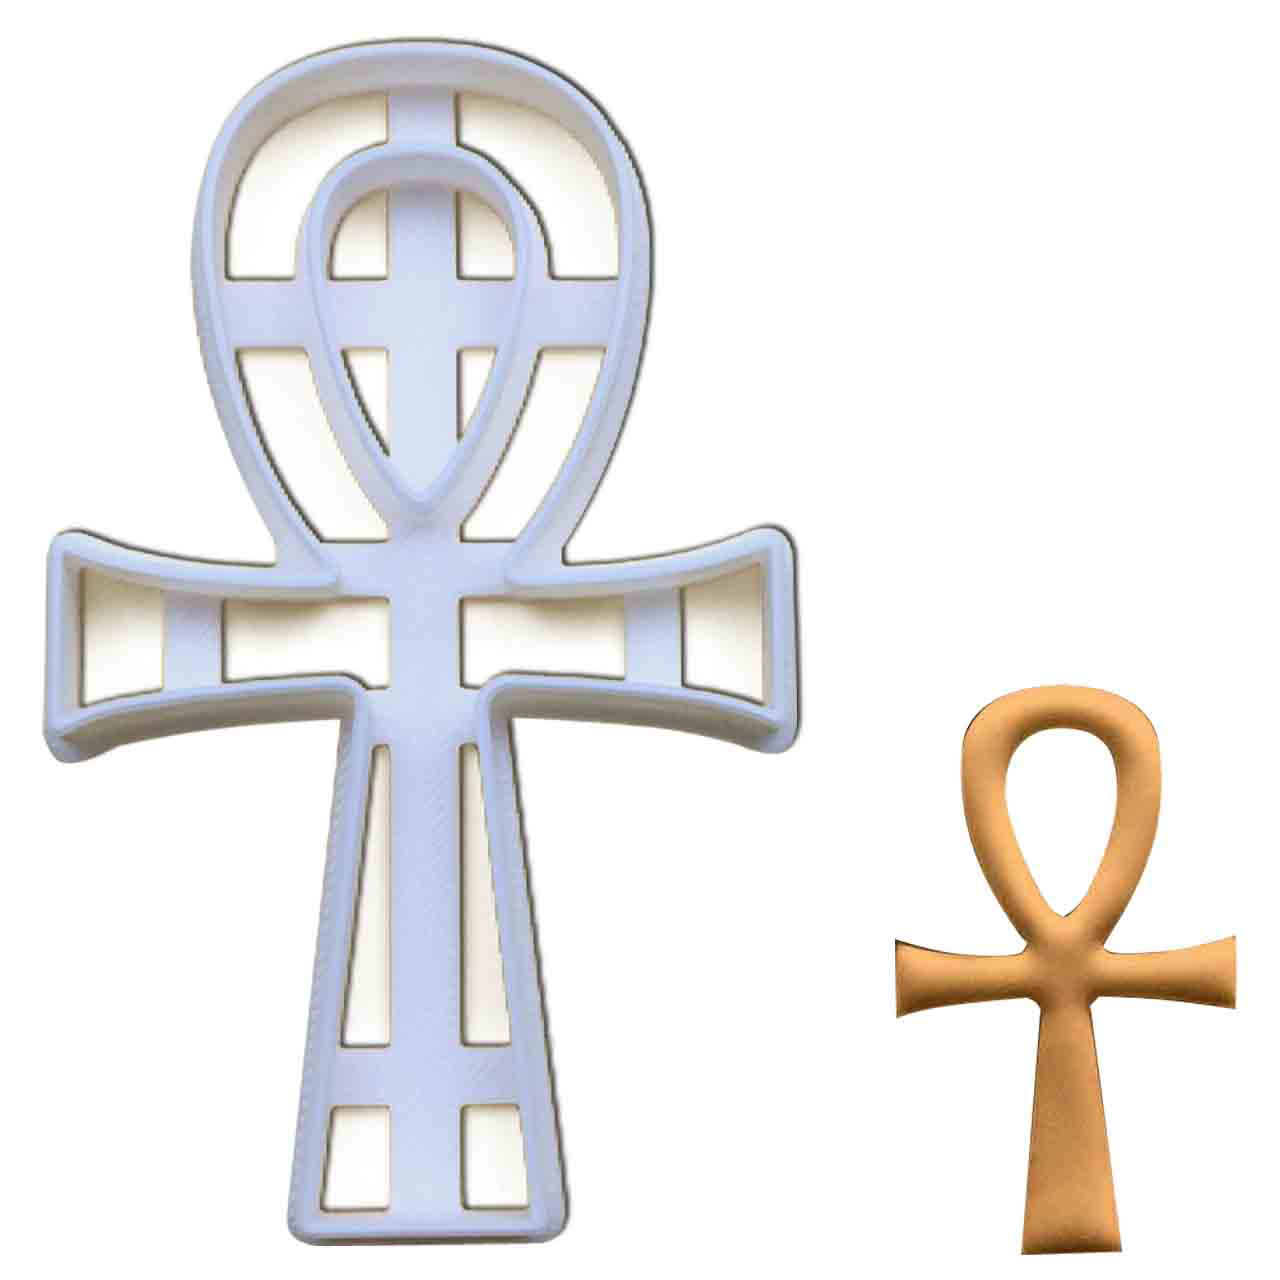 Egyptian Ankh cookie cutter pressed on fondant